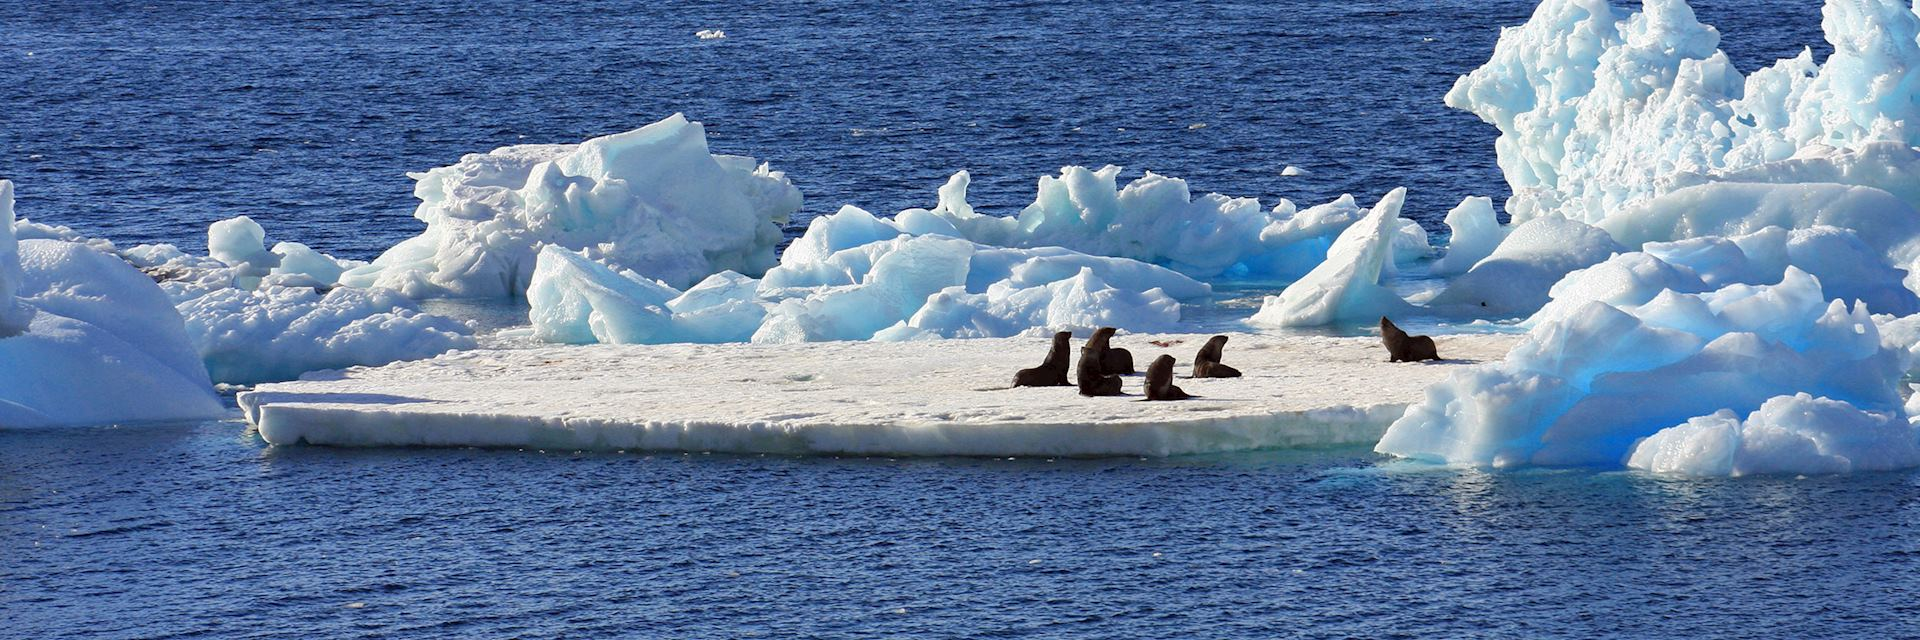 Fur seals on an ice flow, Antarctica